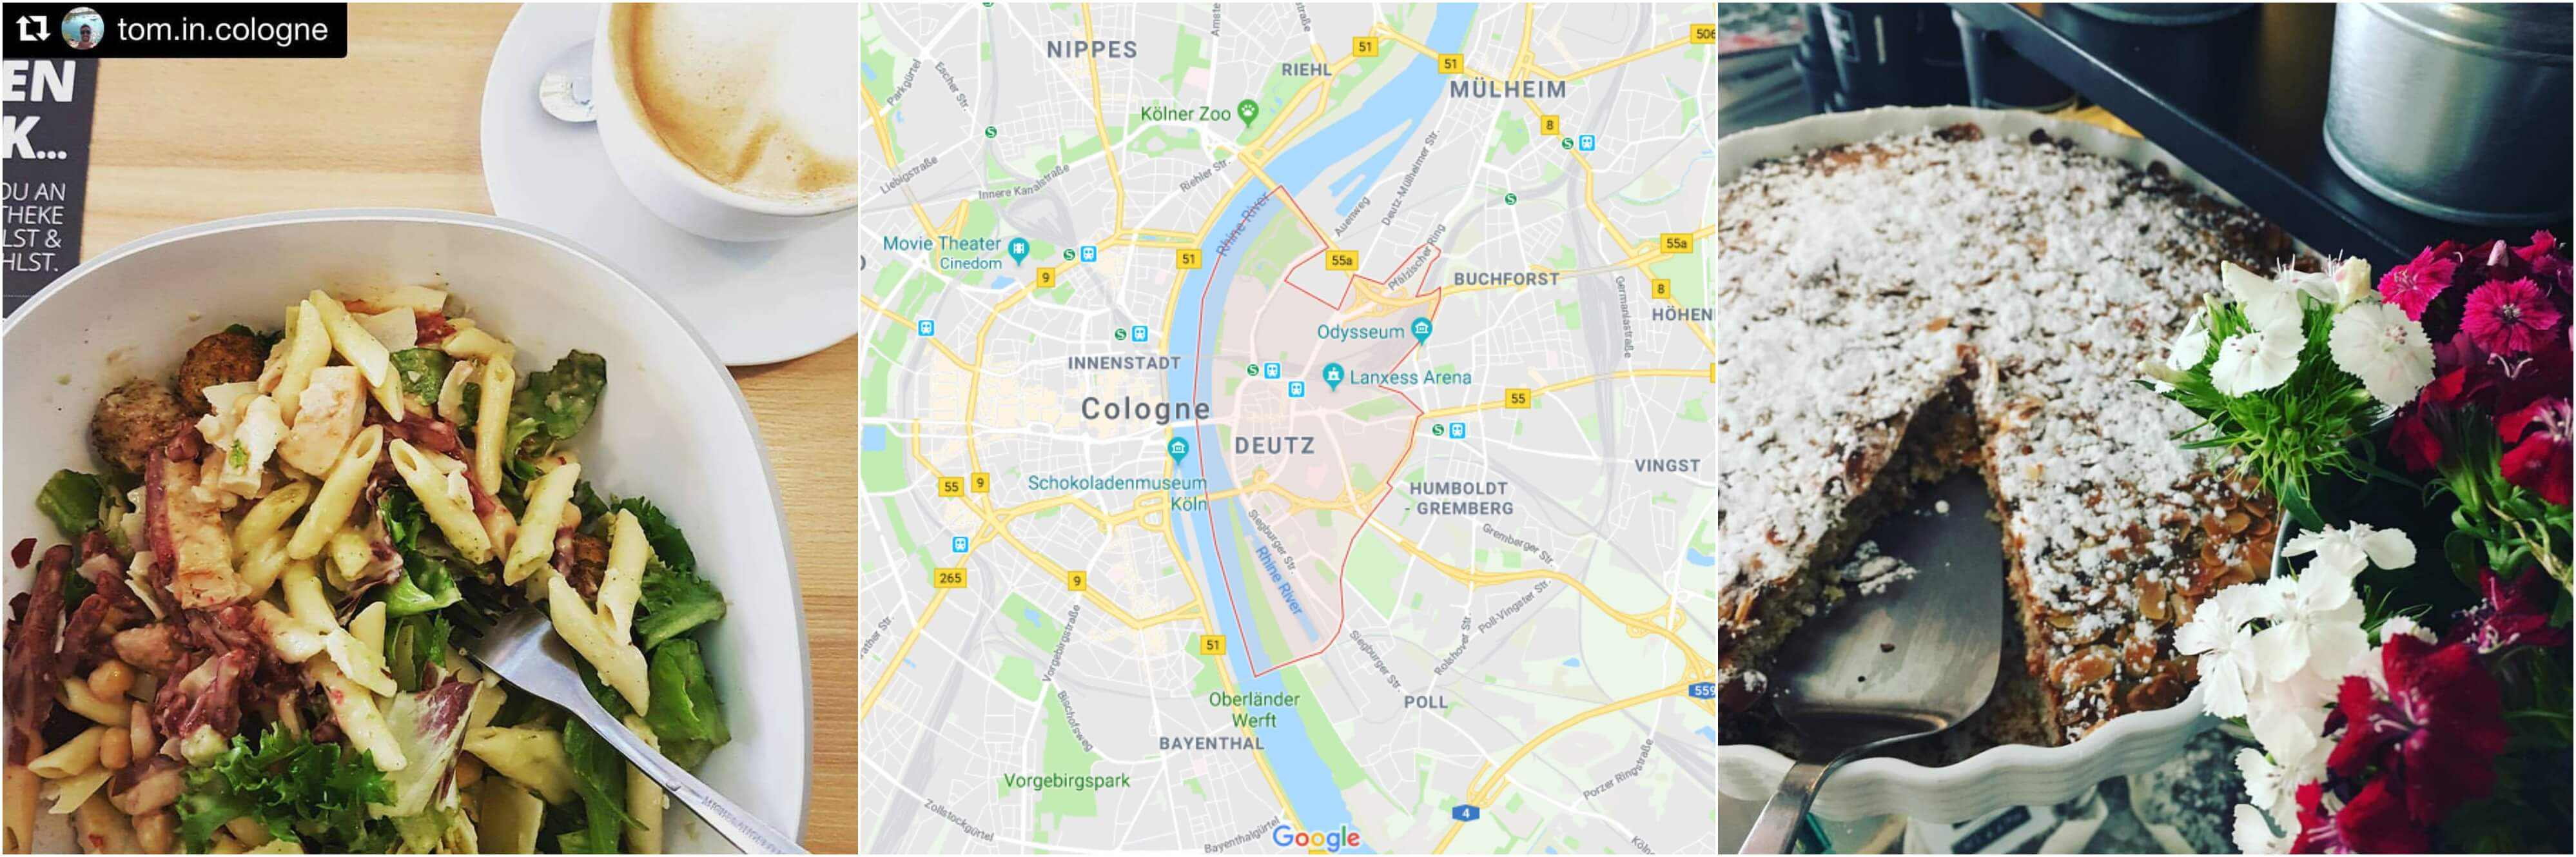 best restaurants in cologne